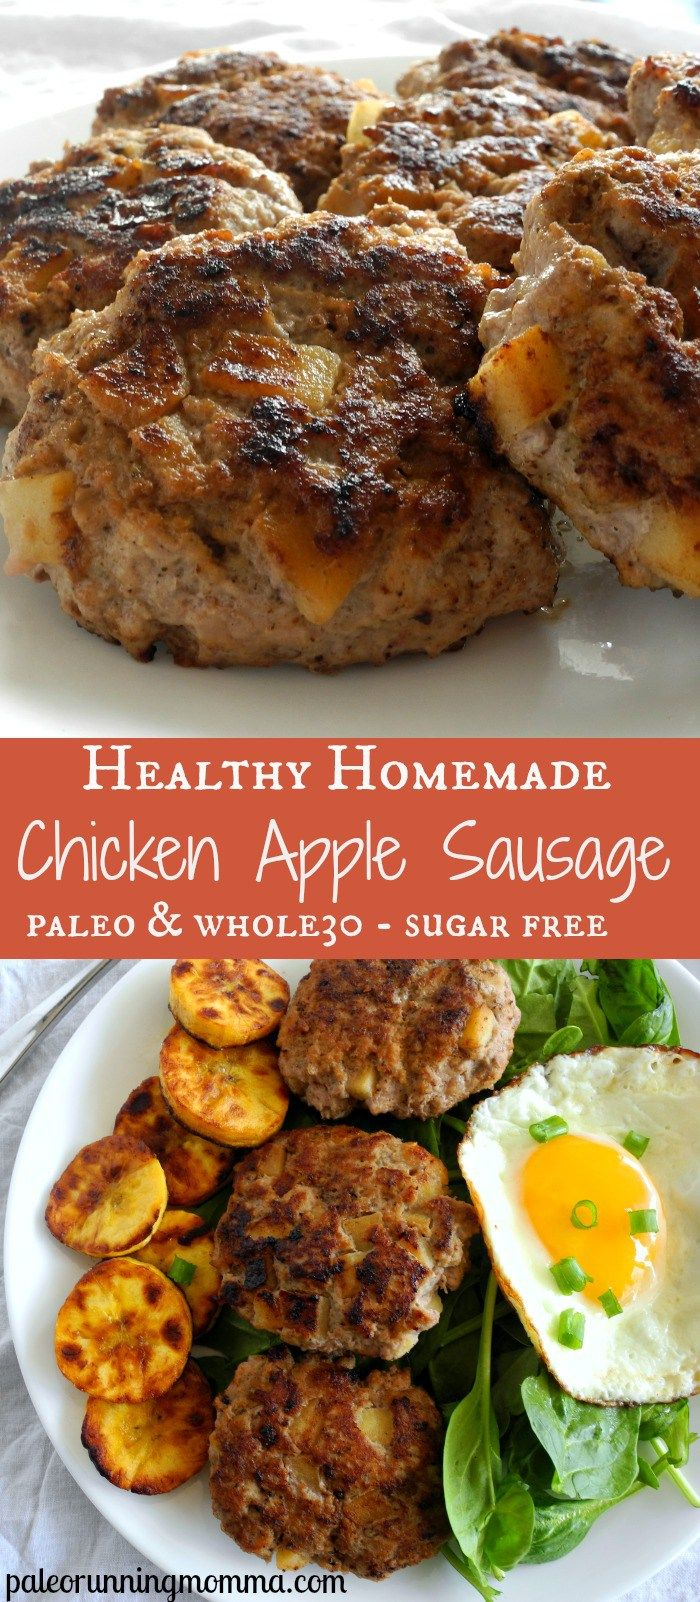 Healthy recipe for homemade chicken apple sausage. Easy and perfect for any meal and can be made ahead! #paleo #whole30 #sugarfree @paleorunmomma